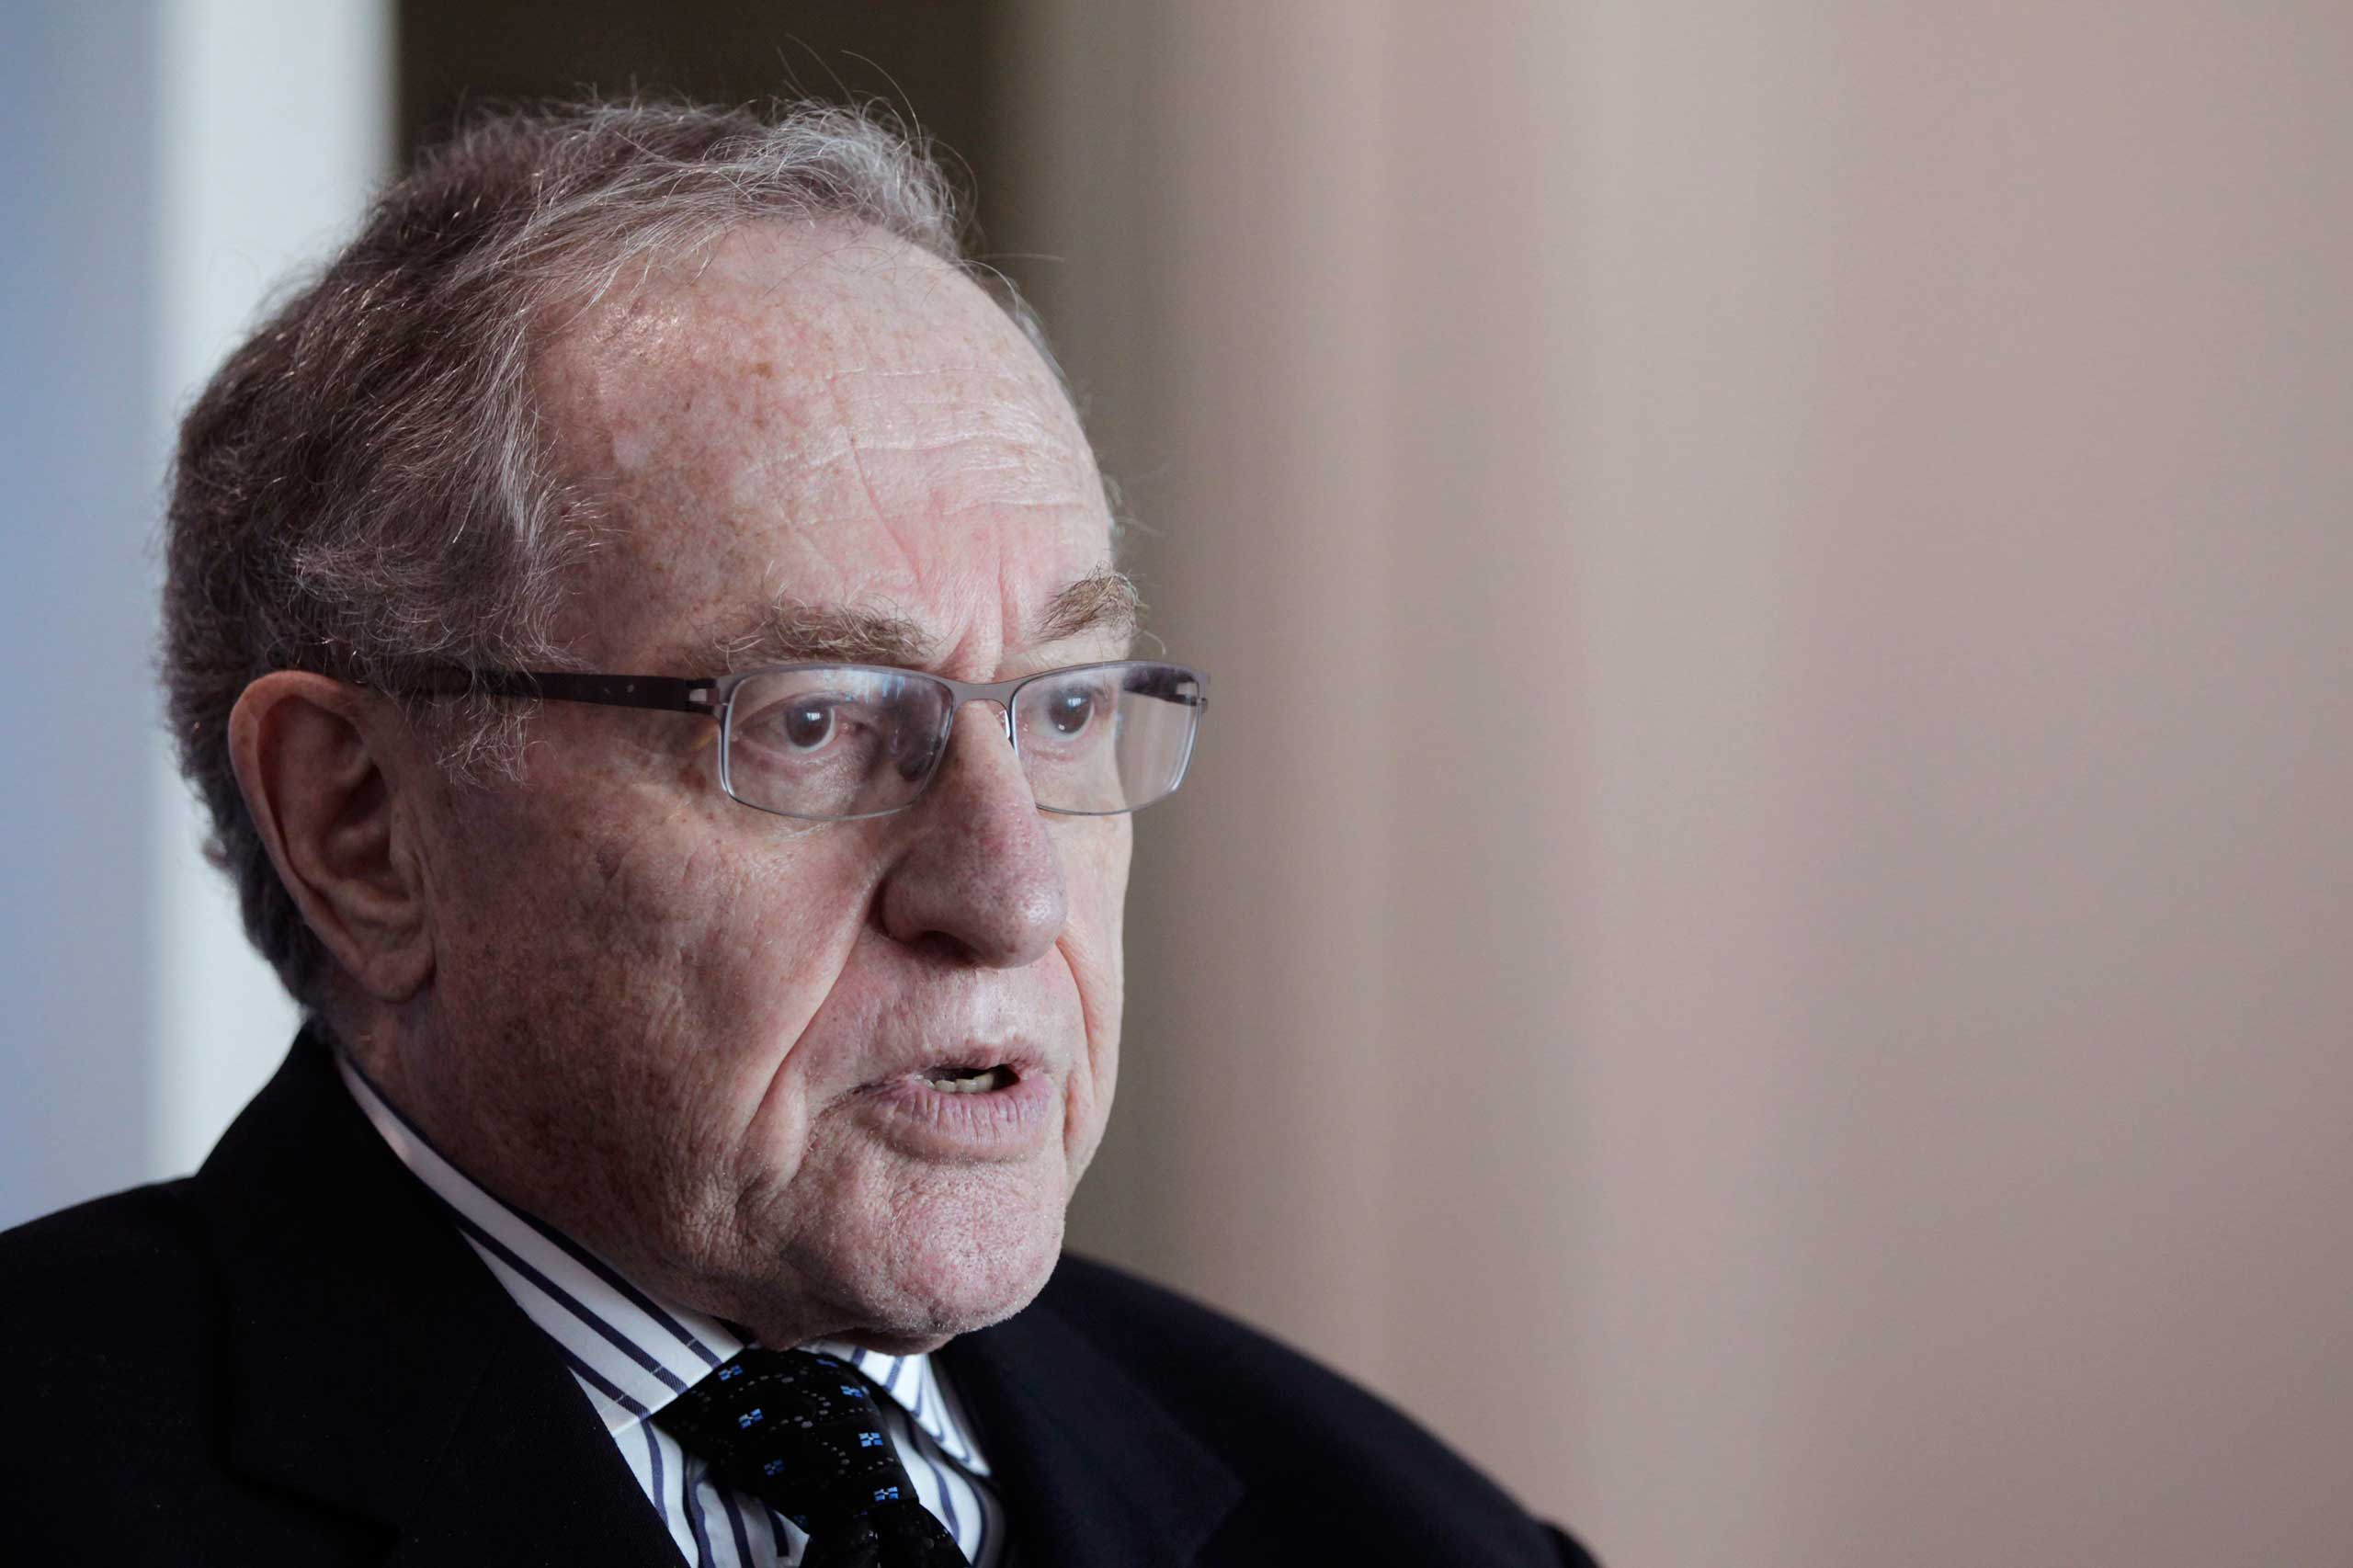 Attorney and law professor Alan Dershowitz discusses allegations of sex with an underage girl levelled against him, during an interview at his home in Miami Beach, Fla. on Jan. 5, 2015.